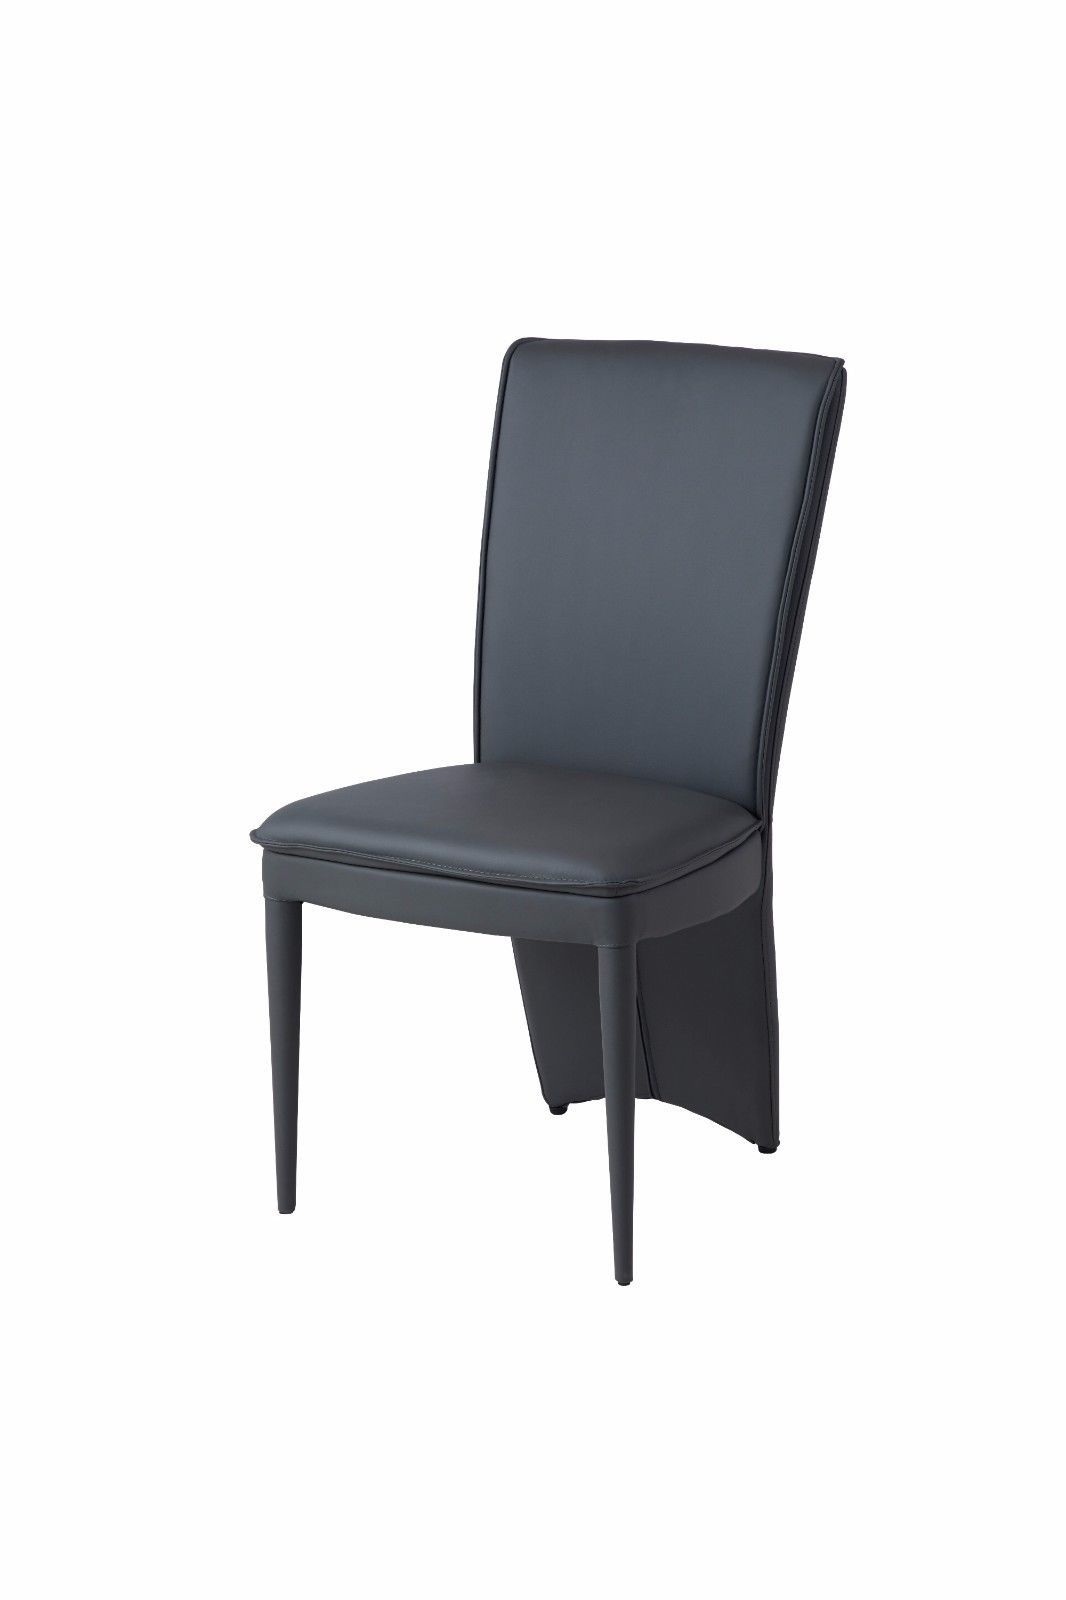 Black Leather Dining Chairs Ayshanti Black Leather Dining Chairs